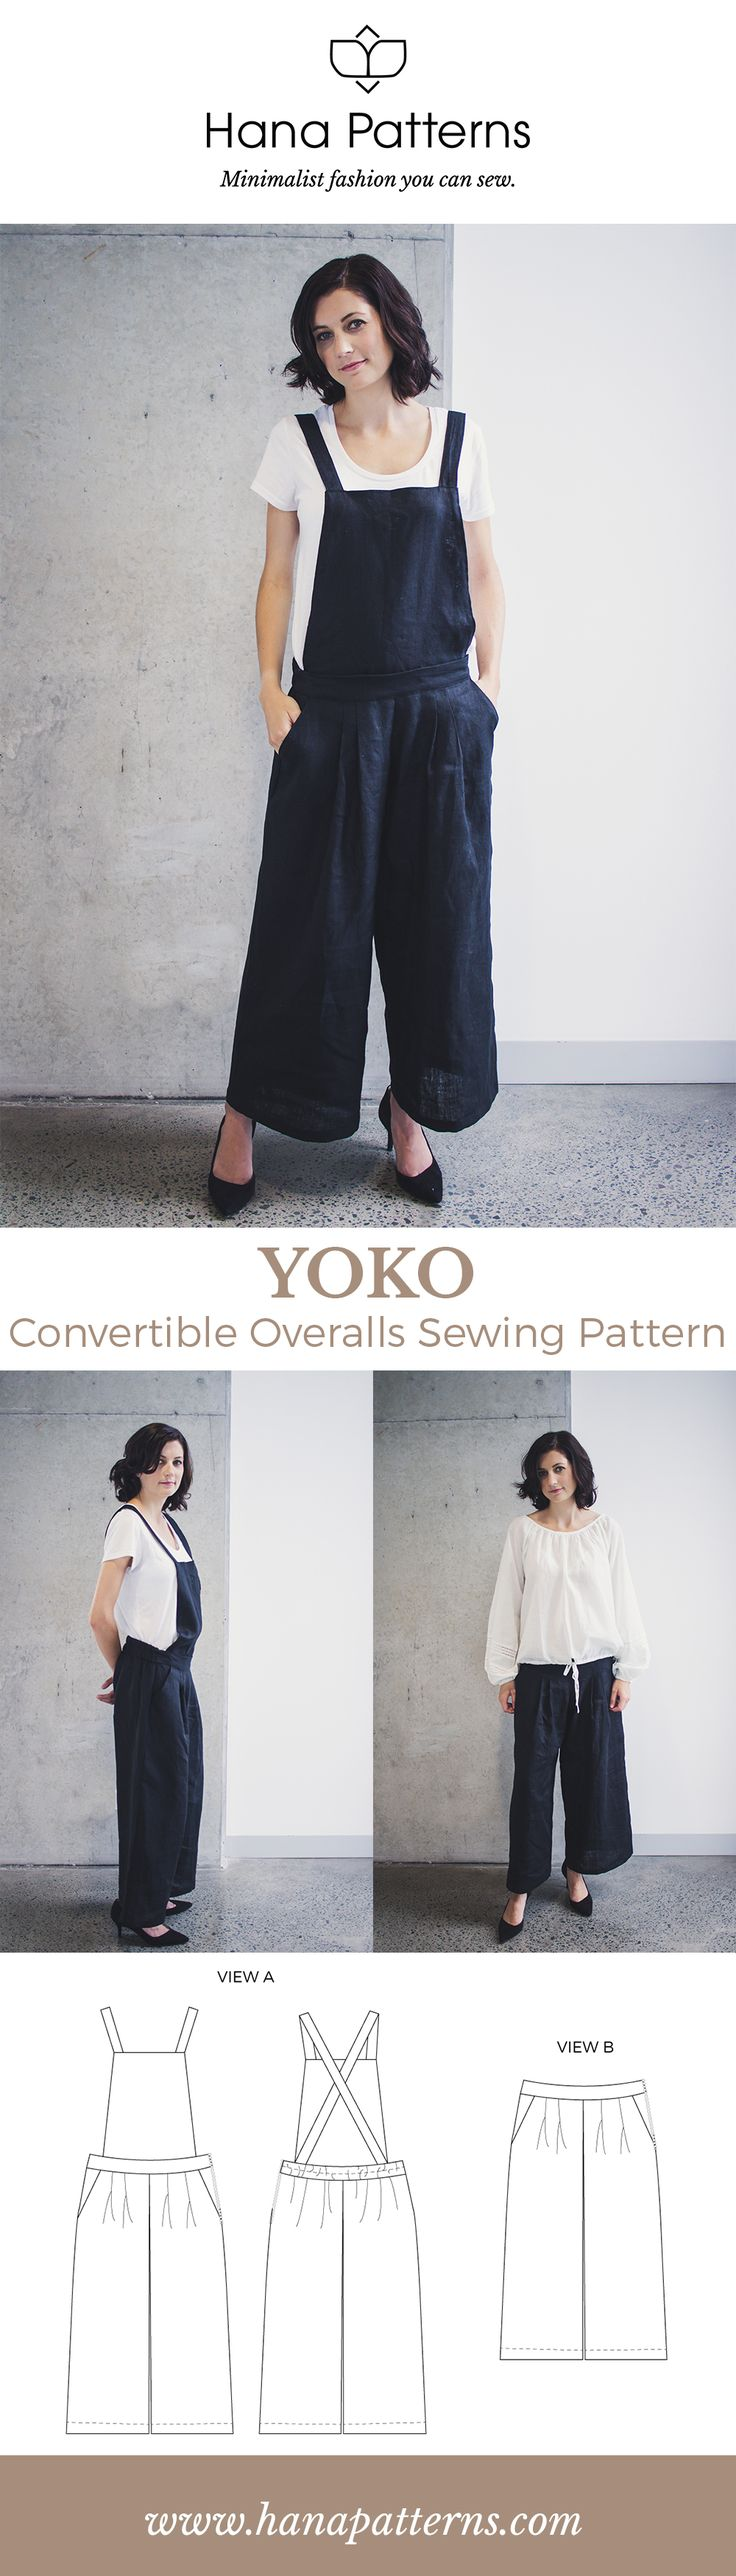 PDF Sewing Patterns for Women | YOKO Convertible Overalls | Overalls never looked so chic! With front pleats and a cropped length, these versatile overalls can be converted into pants by removing the top. Find out more at www.hanapatterns.com